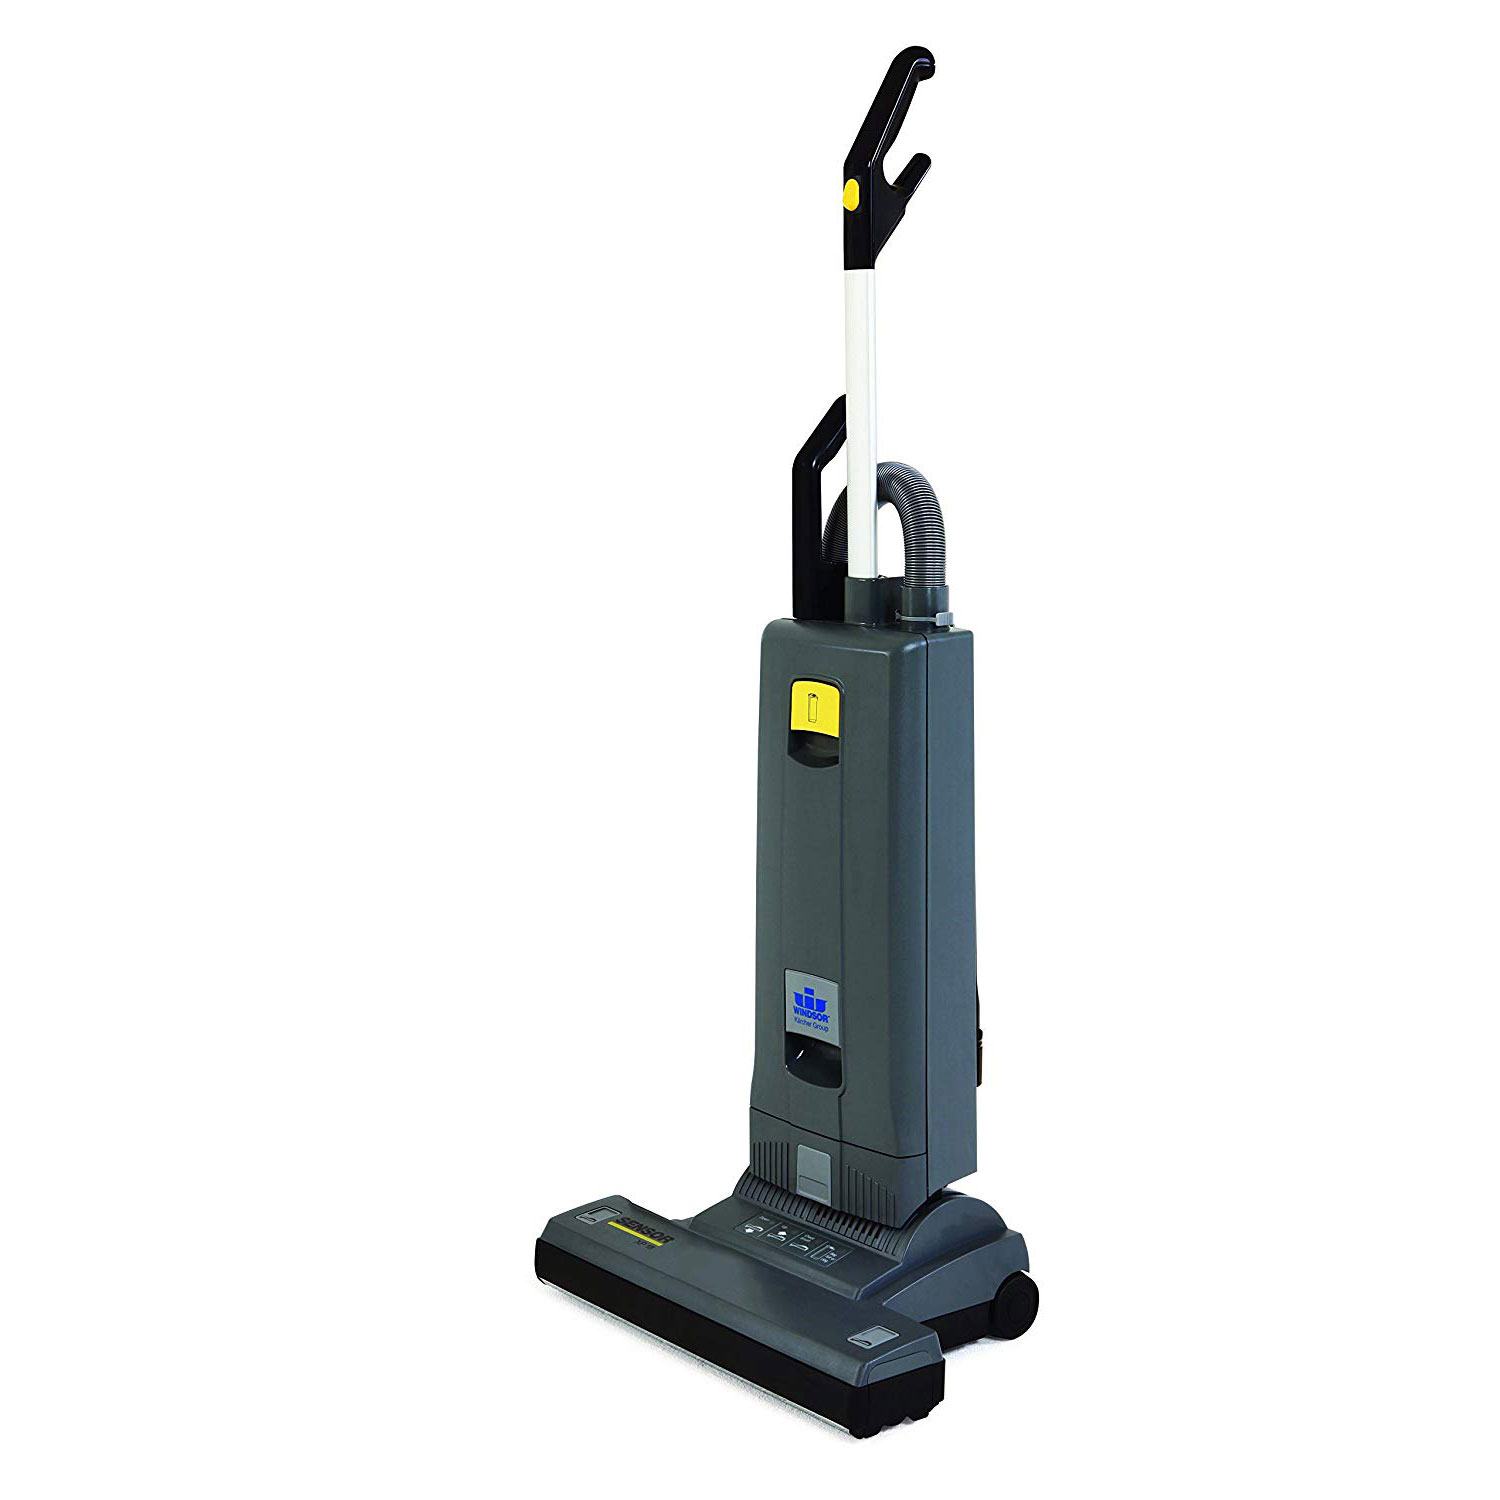 Windsor Sensor XP 18 Upright Vacuum Cleaner w tools 18inch 1.012-030.0 FREE Shipping 3 Year Warranty